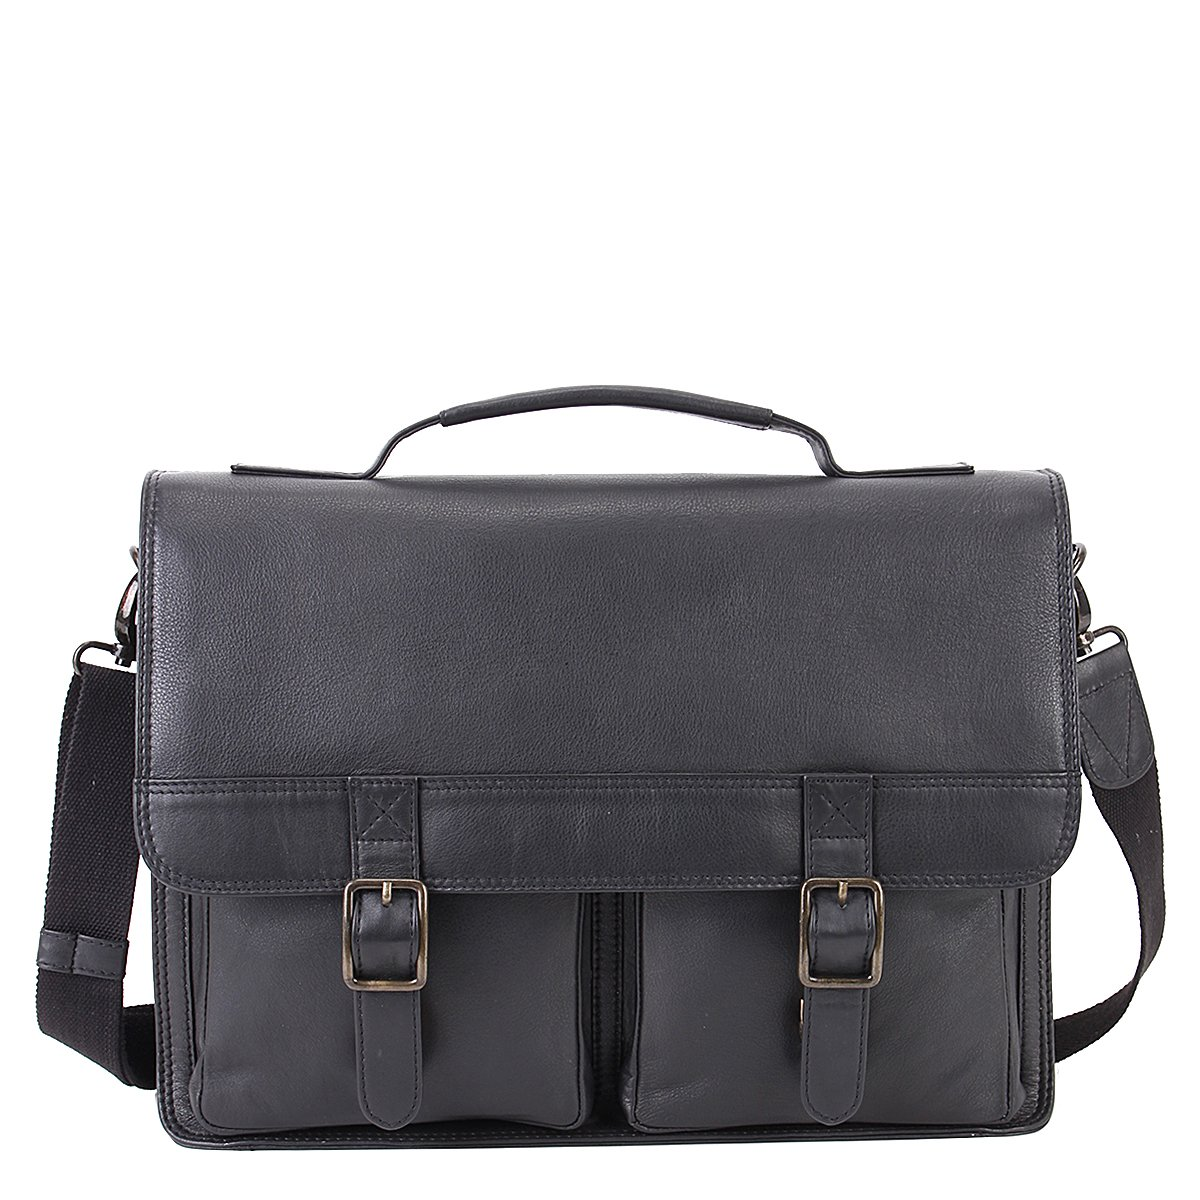 Aiden Double Pocket Laptop Briefcase - Leather Satchel Messenger Bag - 1-Year Warranty (Black)